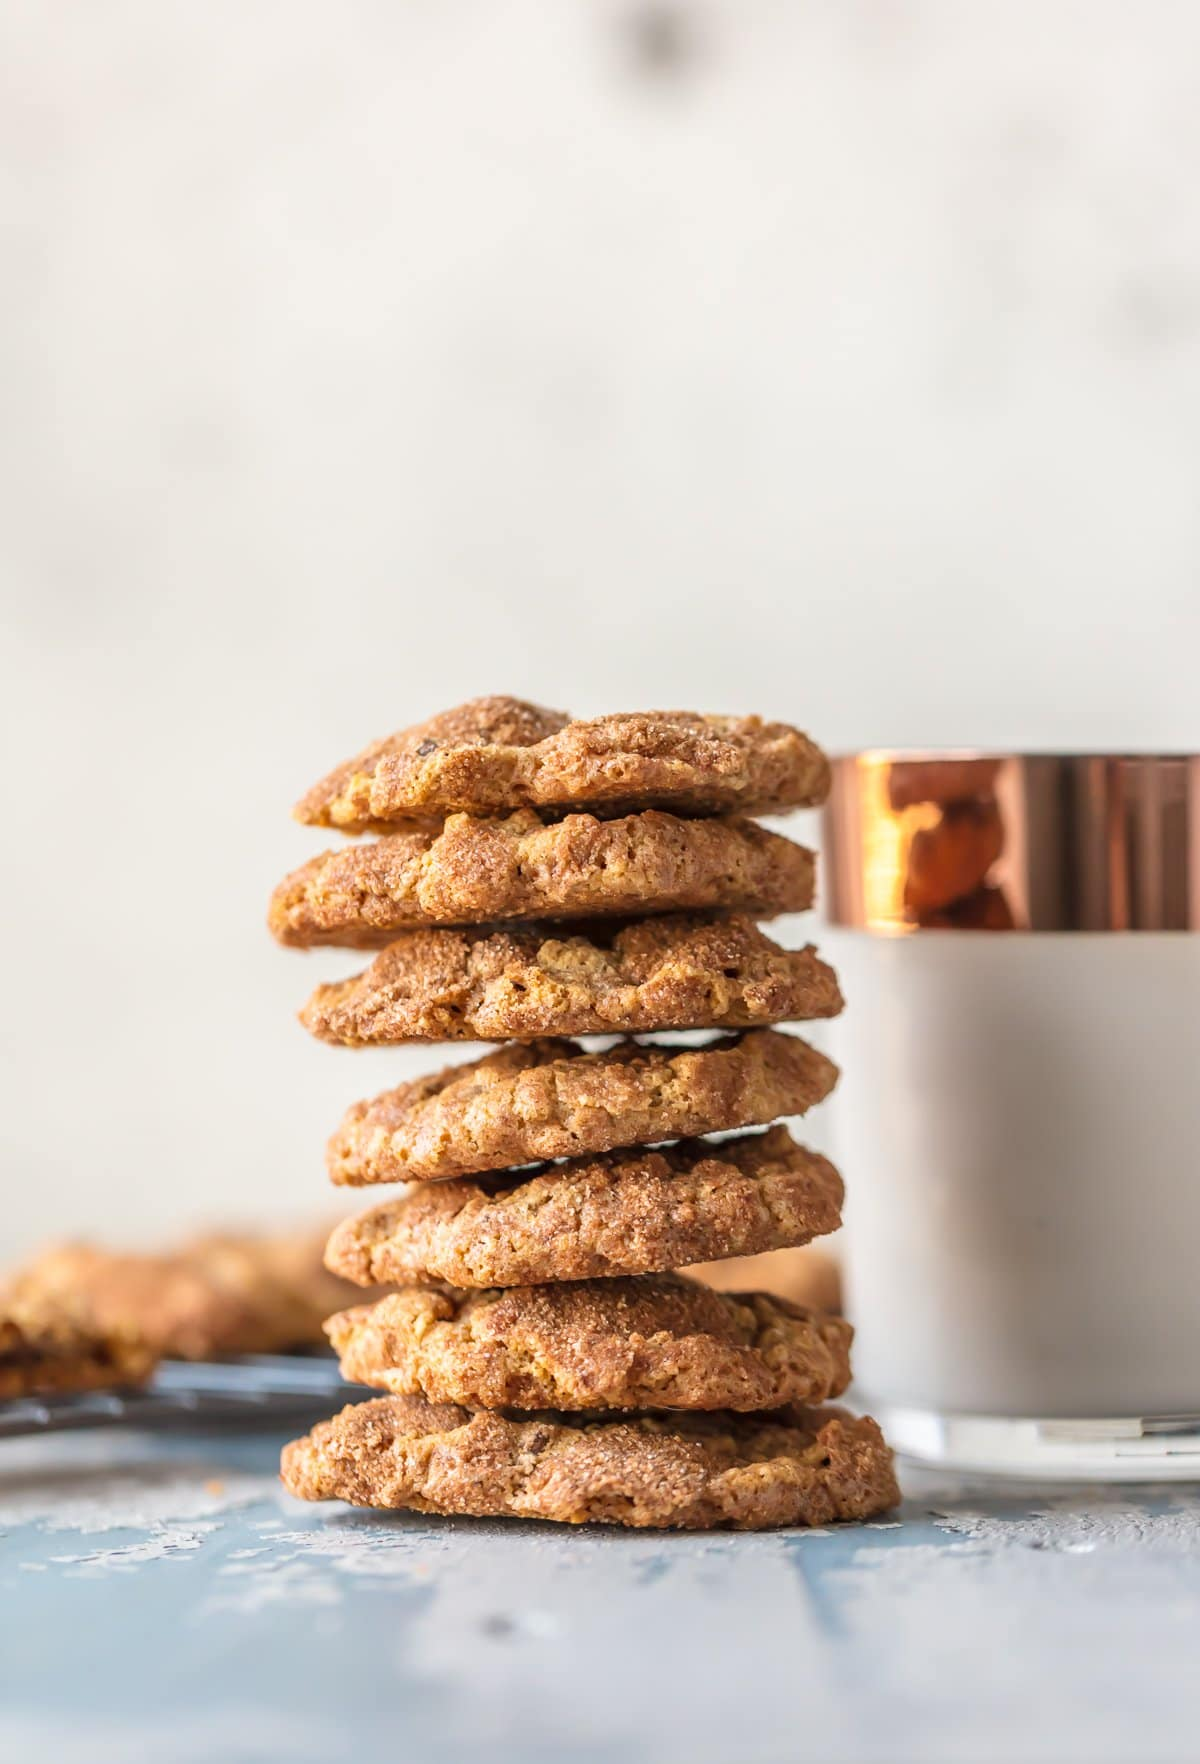 A stack of the best oatmeal chocolate chip cookies next to a glass of milk